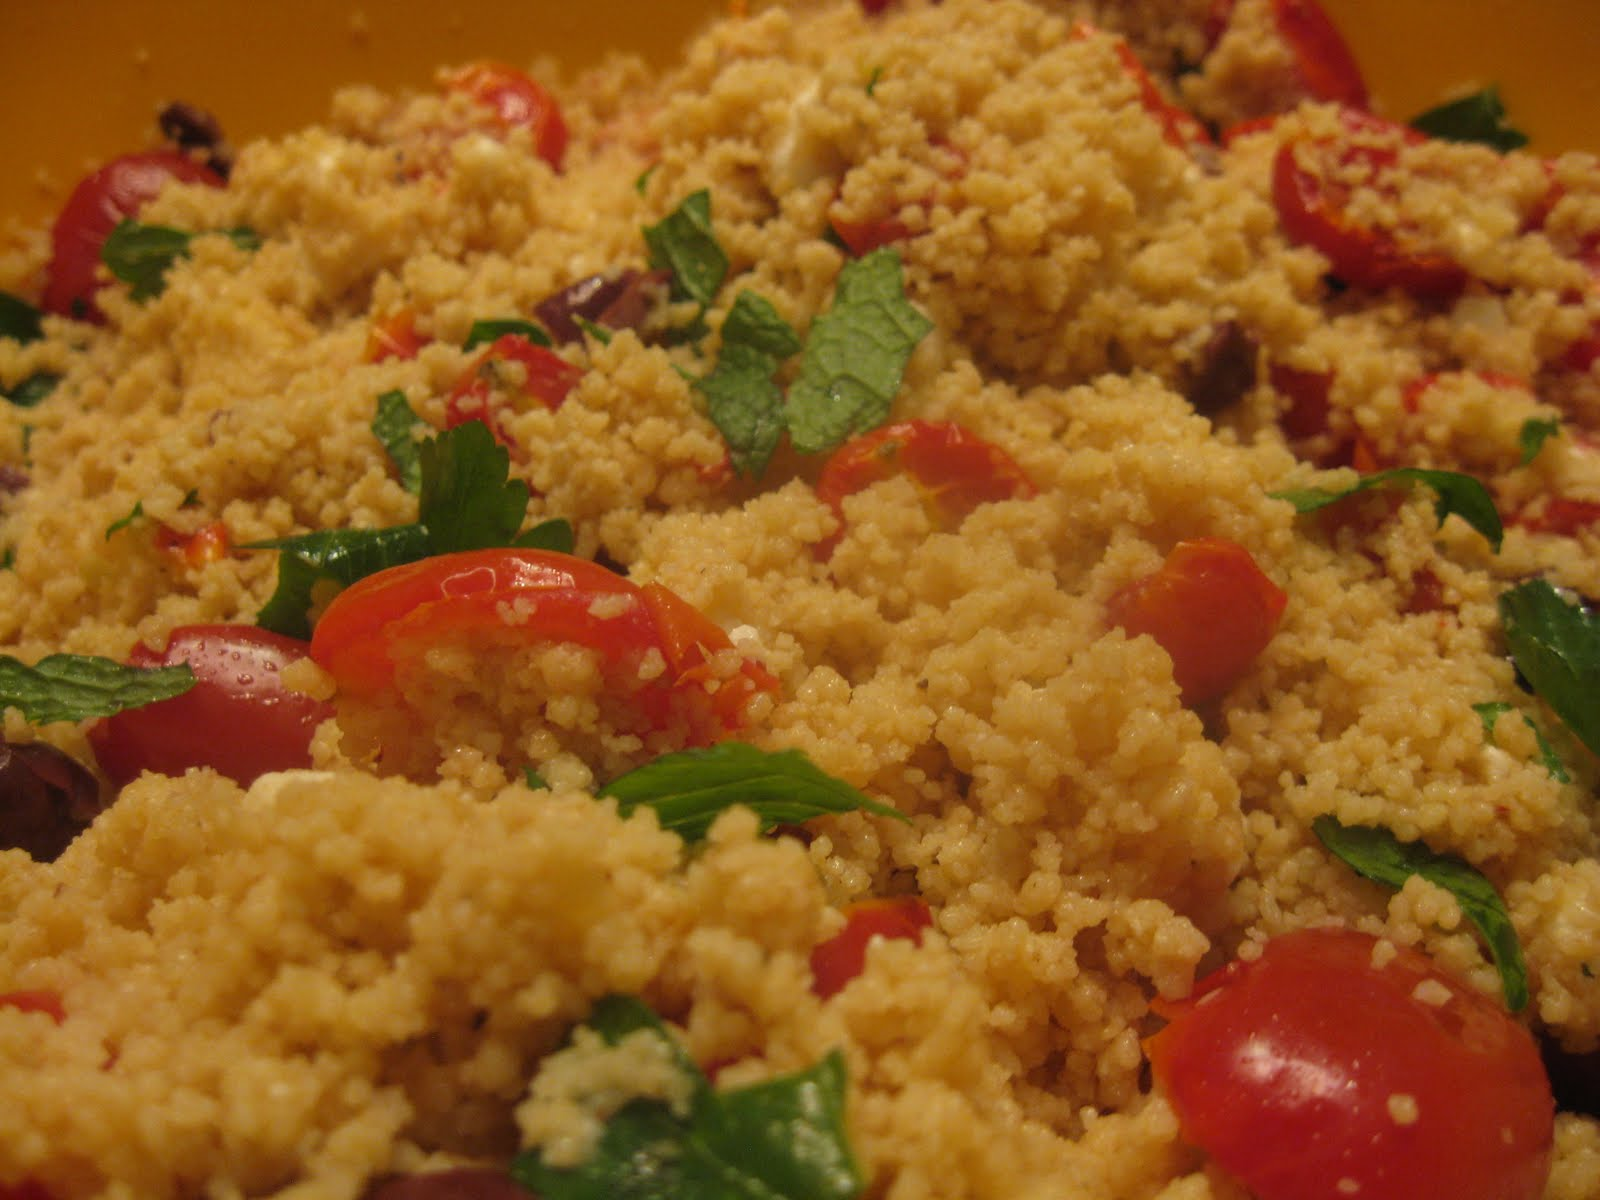 ... Wheat Couscous with Roasted Tomatoes and Roasted Garlic Dressing